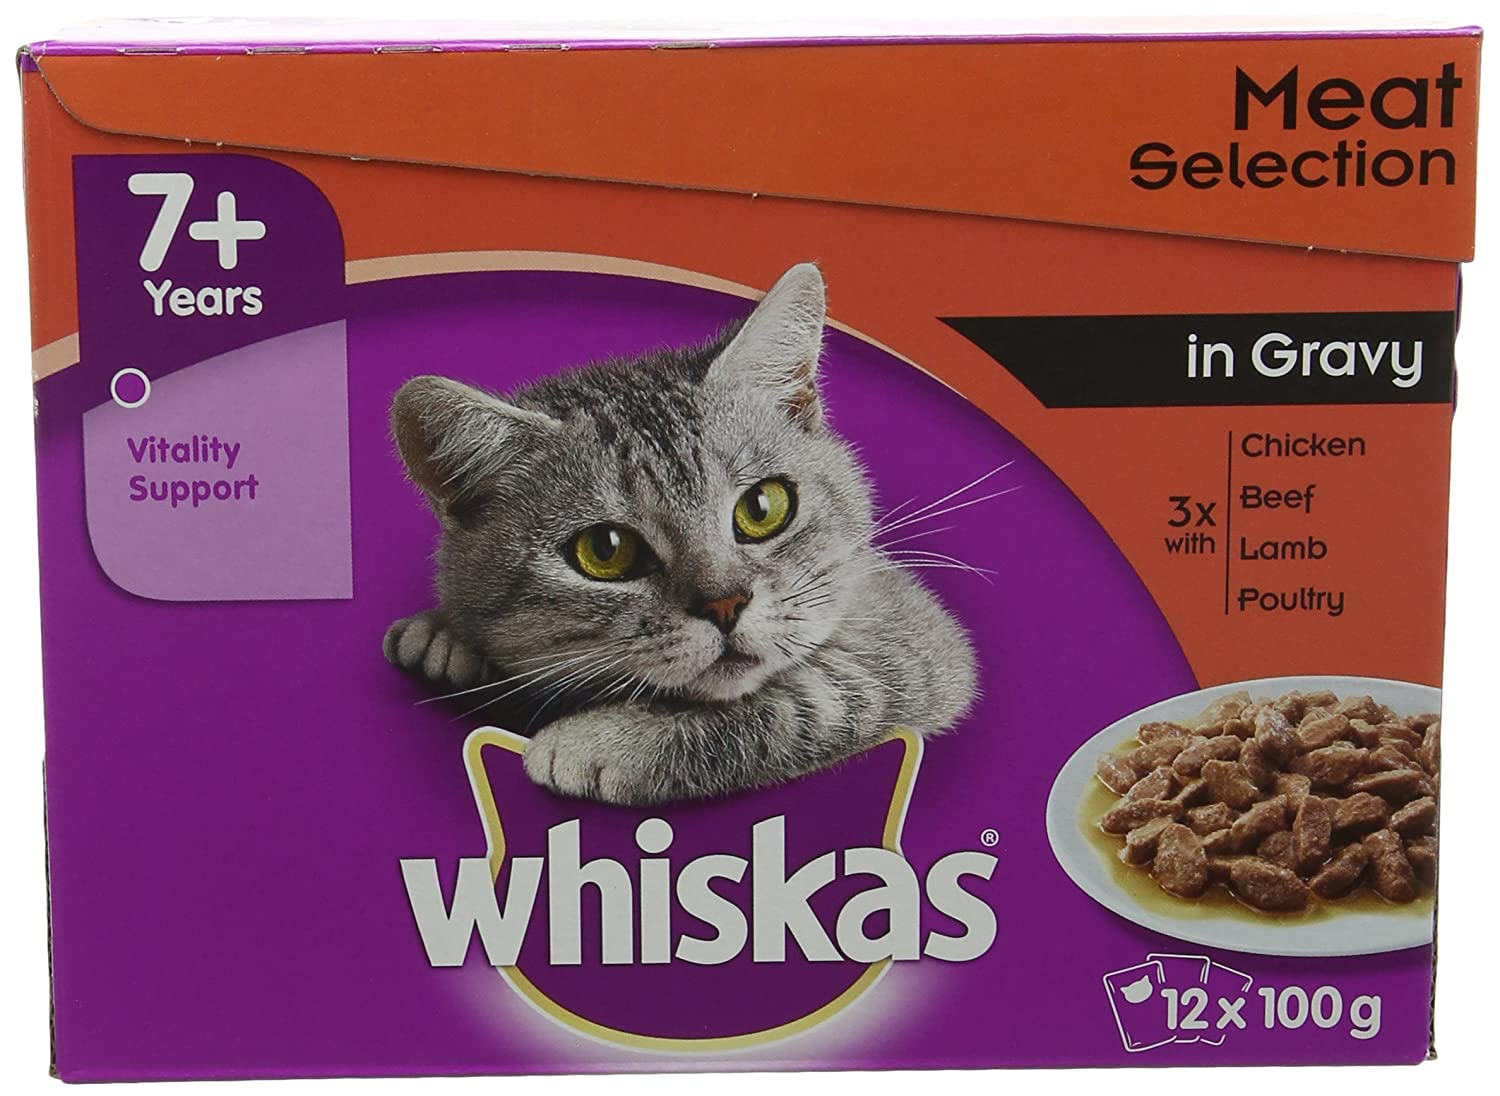 Whiskas 2-12 Months Kitten Pouches Poultry Selection in Gravy 12 x 100 g Yes